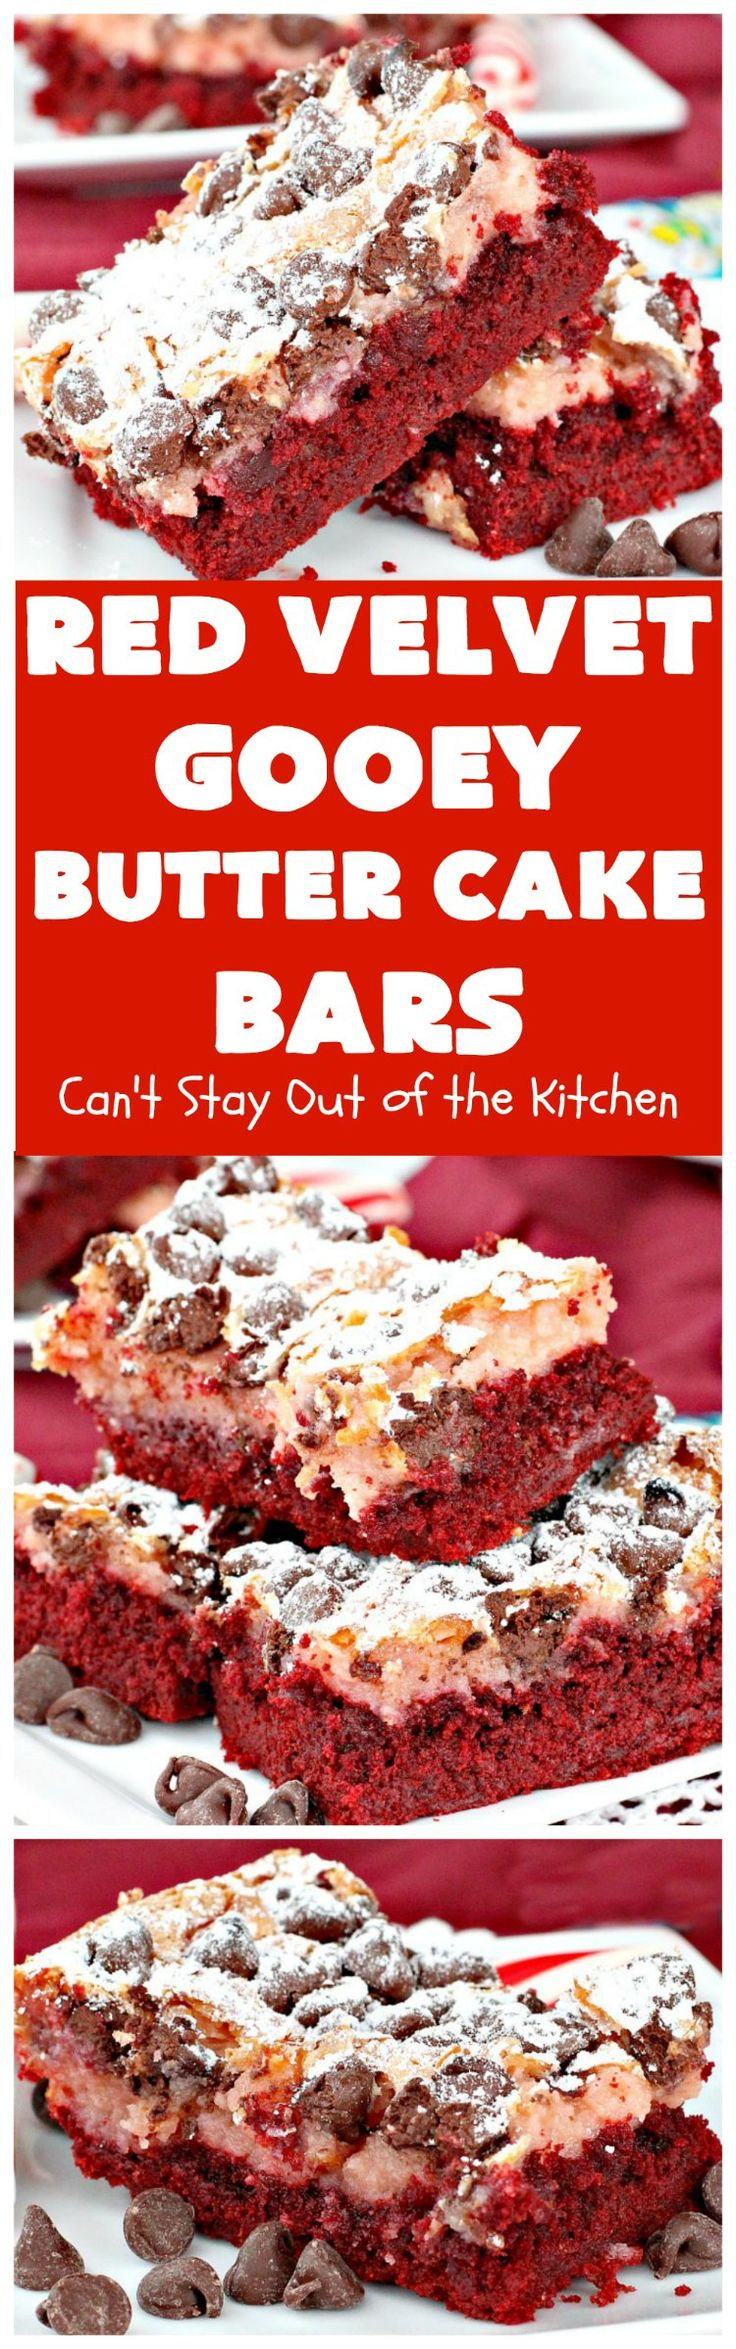 Red Velvet Gooey Butter Cake Bars use a red velvet cake mix & chocolate chips in the batter. Excellent for Valentine's Day or Christmas parties.